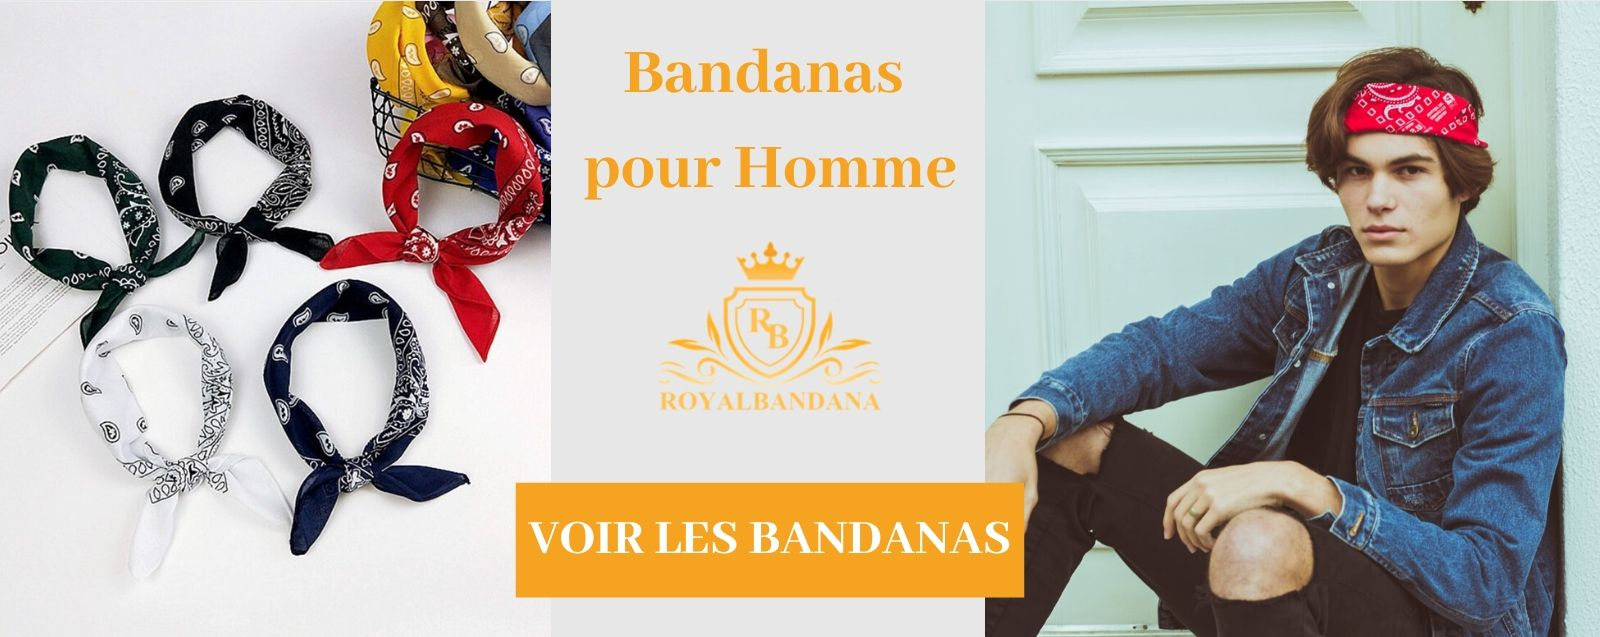 voir Collection Bandanas homme royalbandana